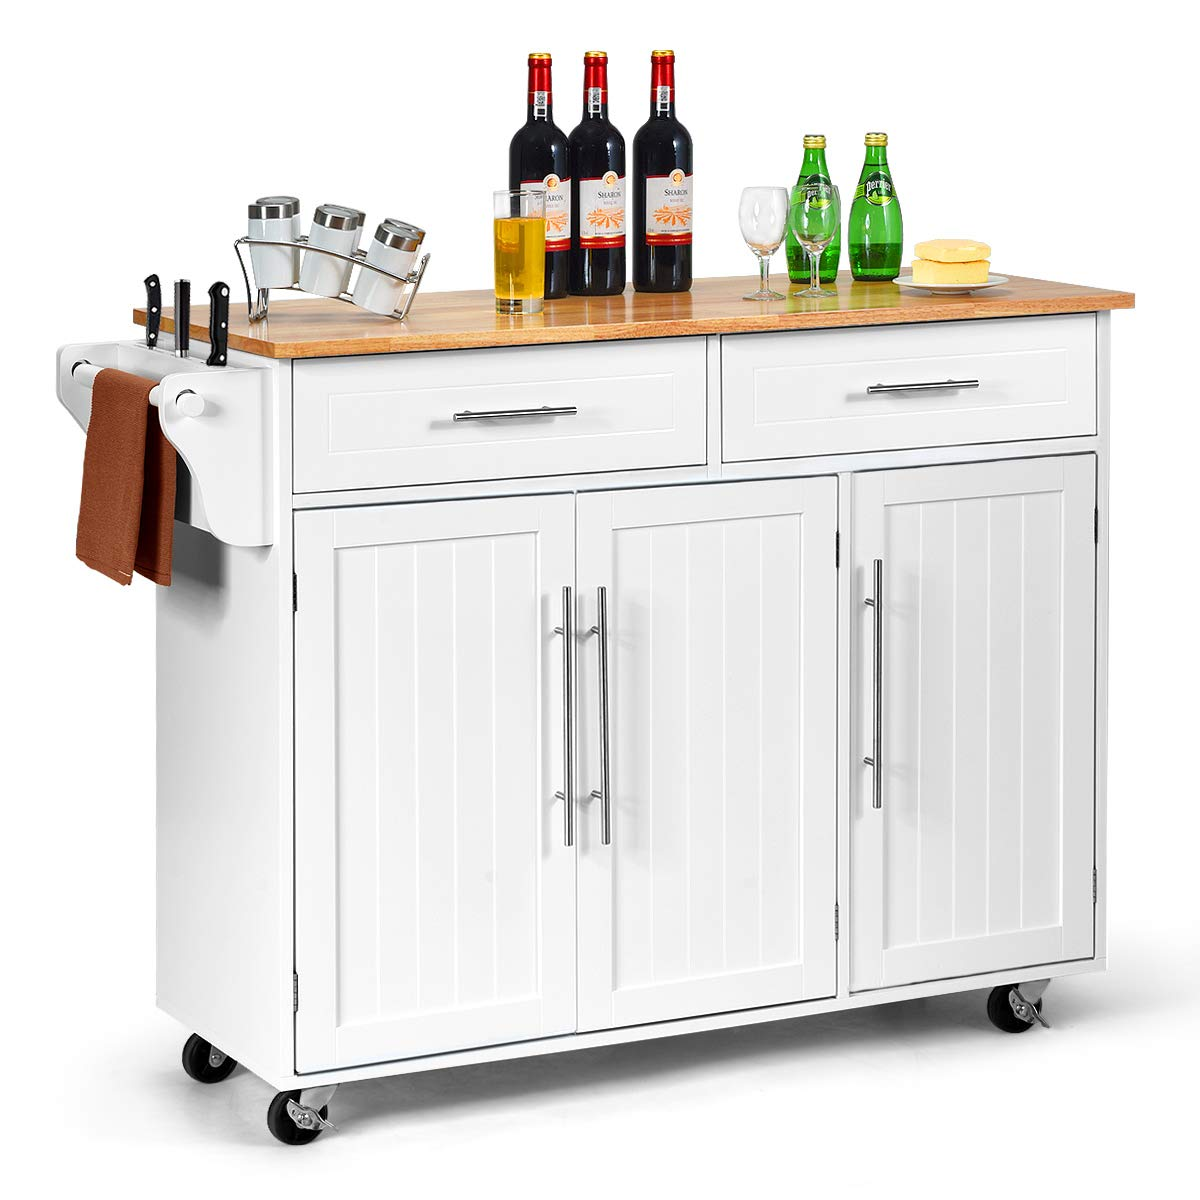 Giantex Kitchen Island Cart Rolling Storage Trolley Cart with Lockable Castors, 2 Drawers, 3 Door Cabinet, Towel Handle, Knife Block for Dining Room Restaurant Use (White) by Giantex